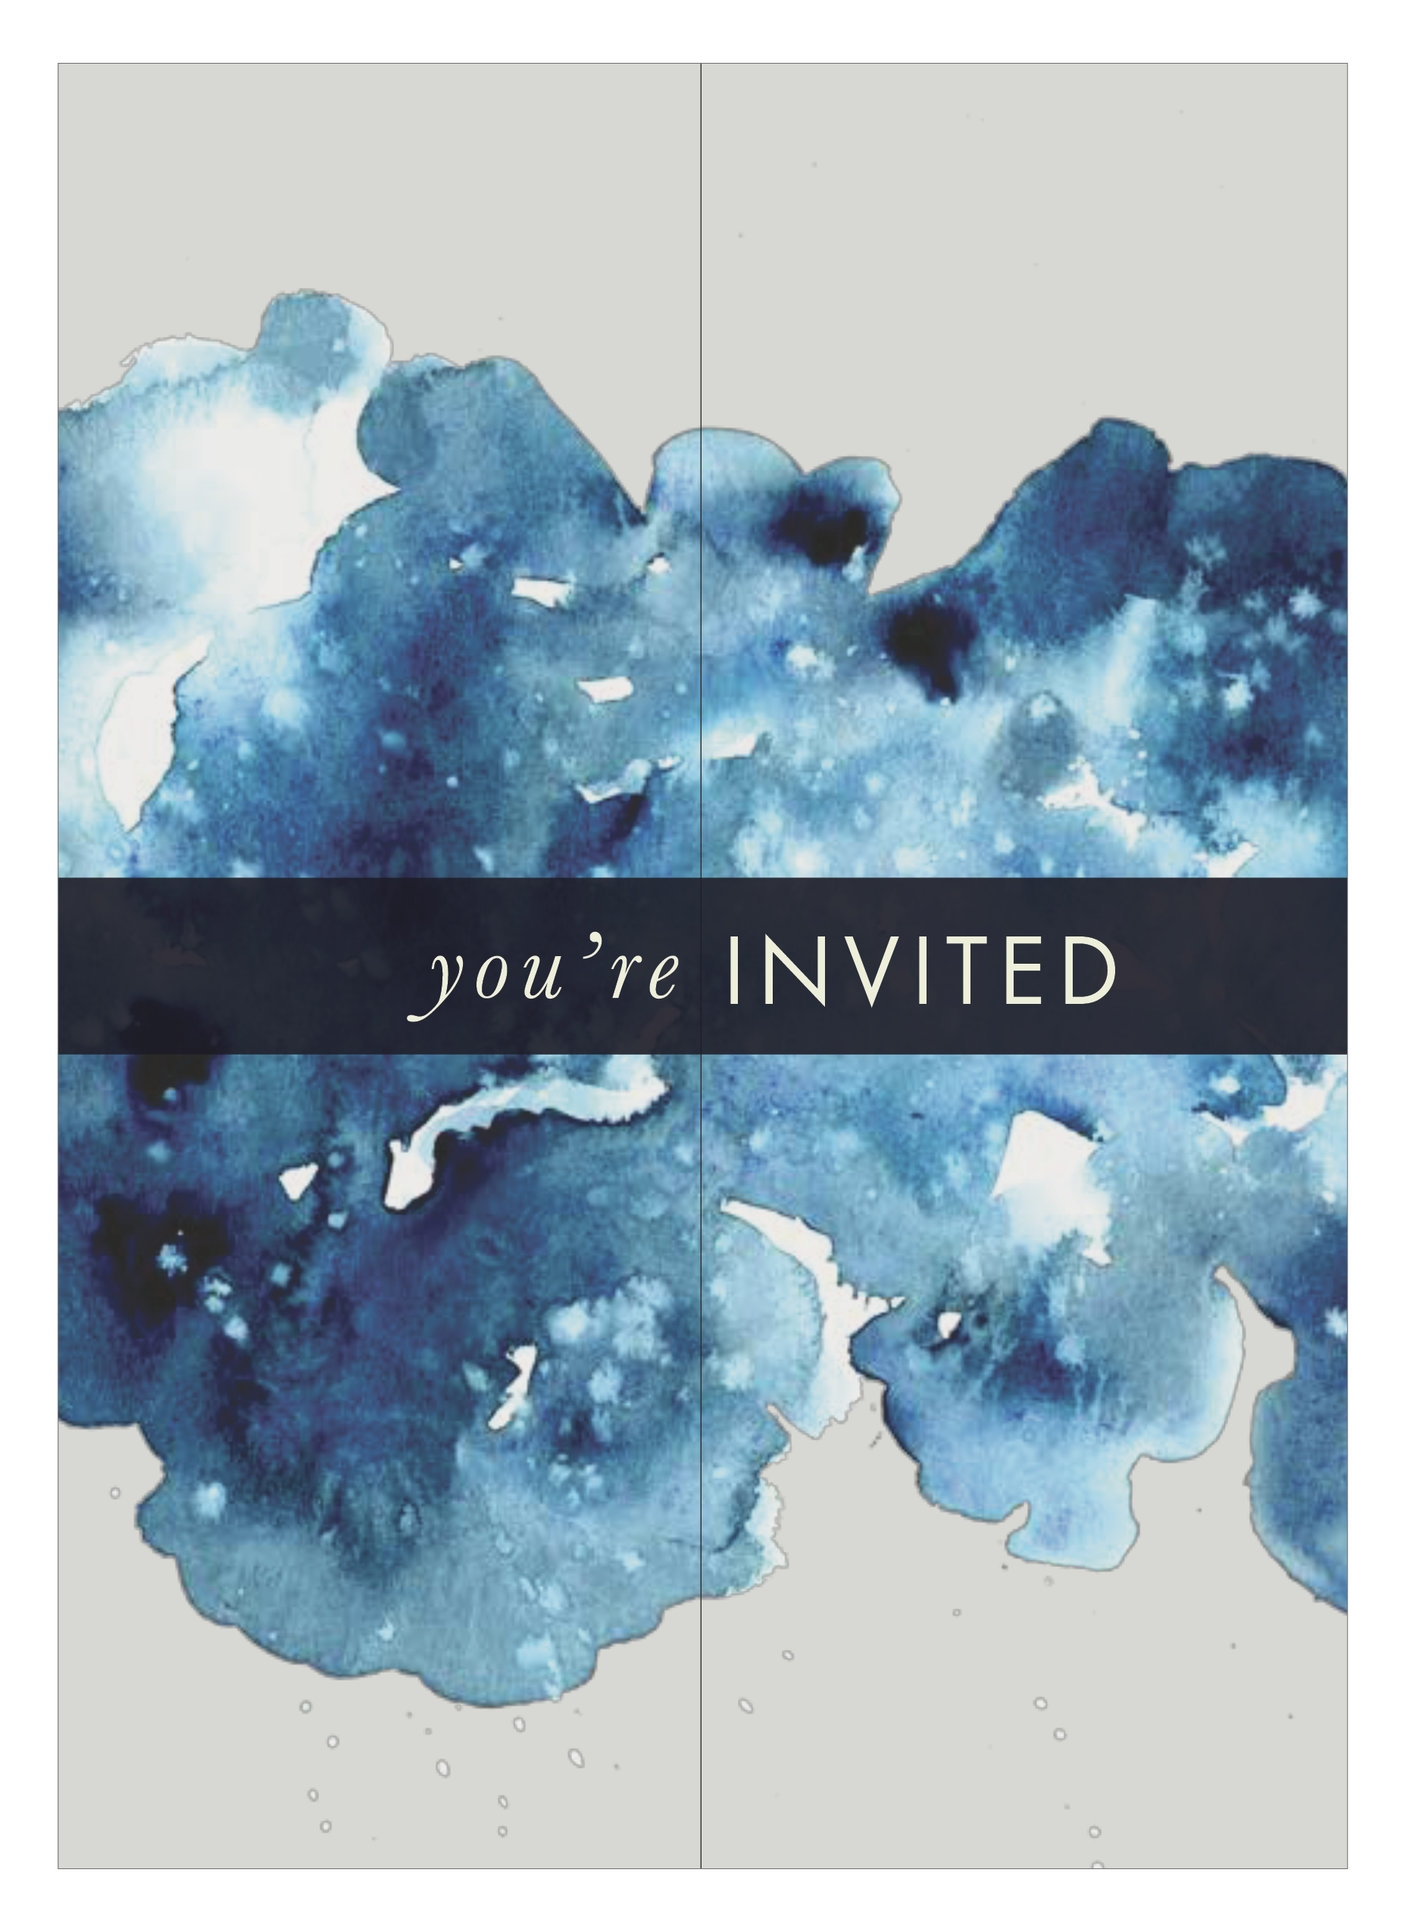 eileen fisher communityfoundation gratitude gala,december 2016 - Working with a team of Youth Ambassadors from the Eileen Fisher Leadership Institute, I designed print materials and supported overall event aesthetics for the Eileen Fisher Community Foundation's annual Gratitude Gala. Supporting the Starry Nighttheme, bold watercolors in dark blues and golds added to the ethereal atmosphere, while balancing EILEEN FISHER's timeless designs and effortless simplicity.Photos by Michael Chung.RIght: Invitation front